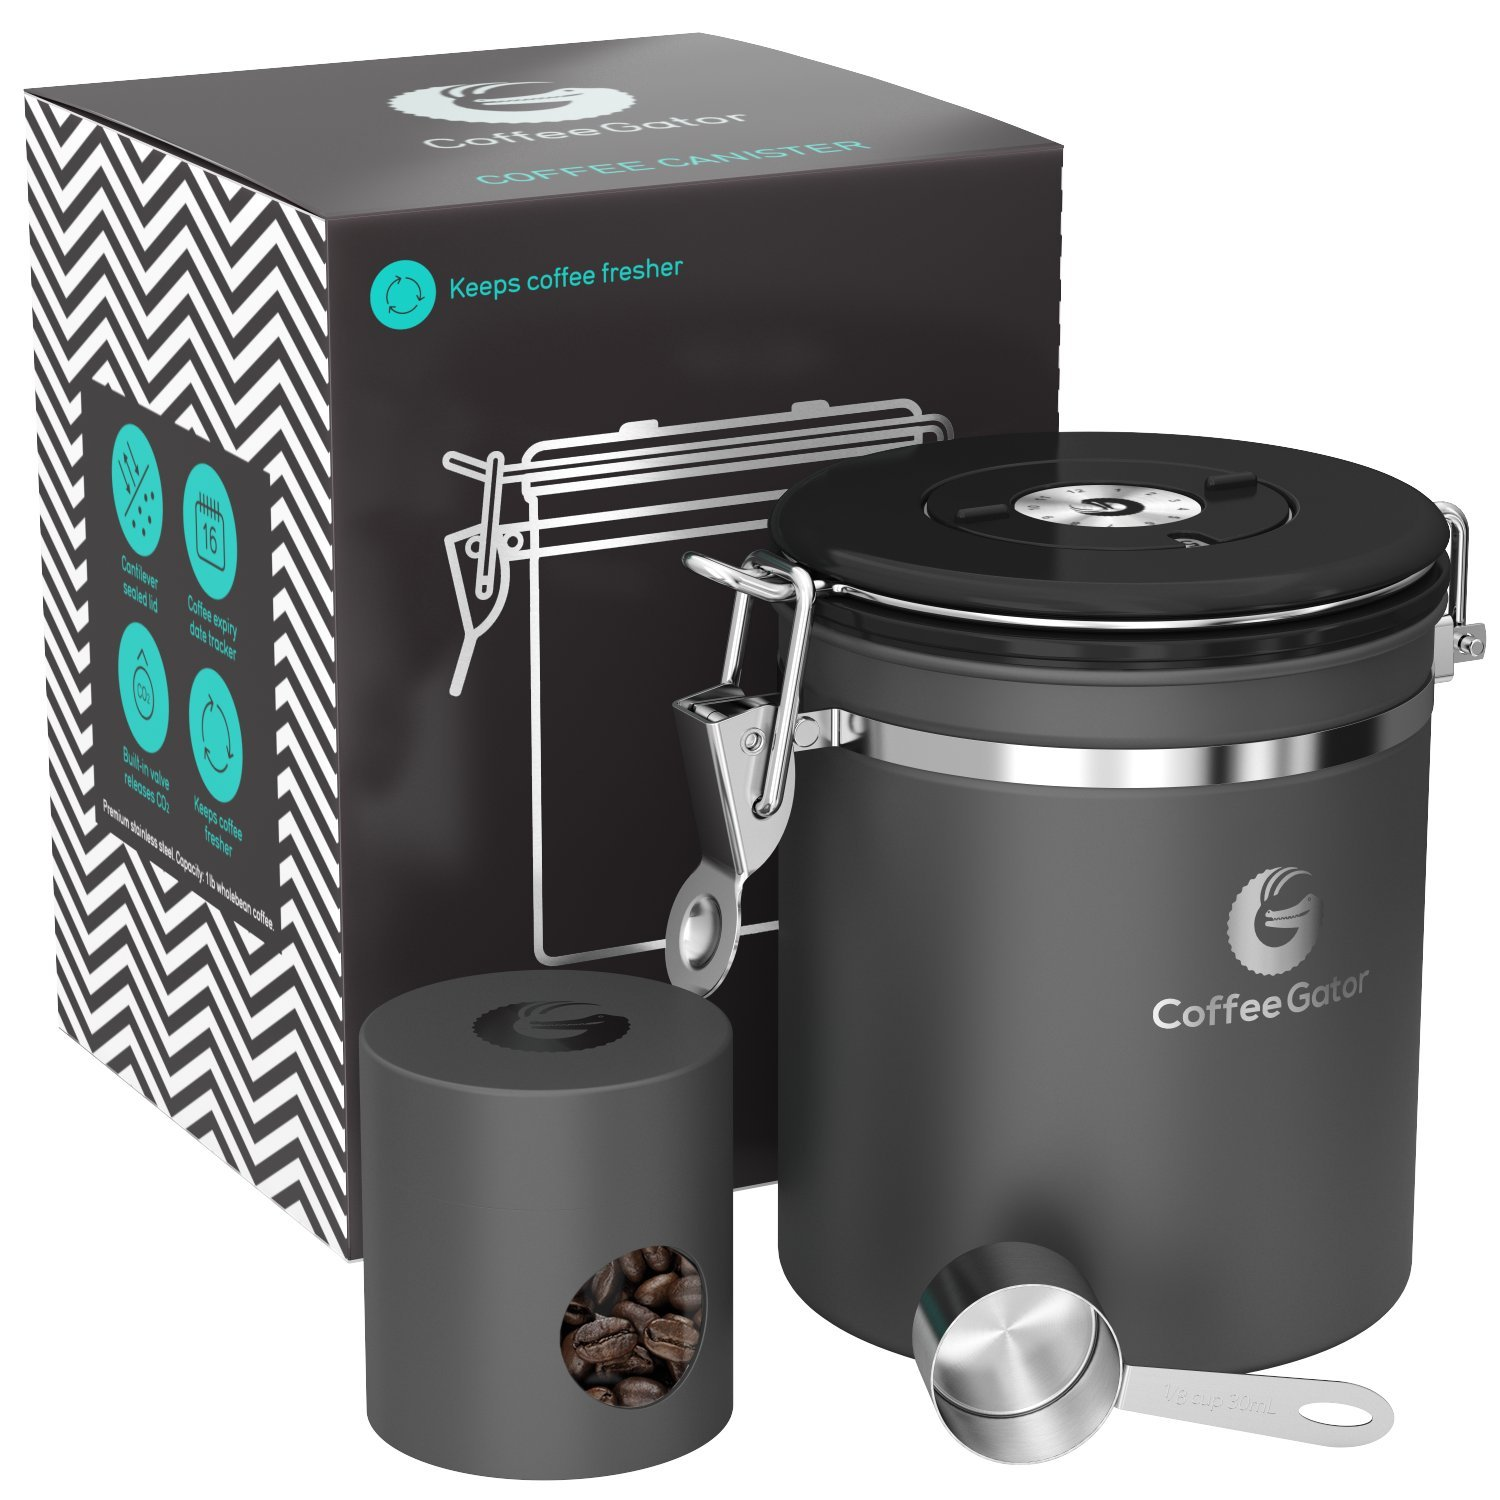 Coffee Gator Stainless Steel Container - Canister with co2 Valve, Scoop, and Travel Jar - Medium, Gray by Coffee Gator